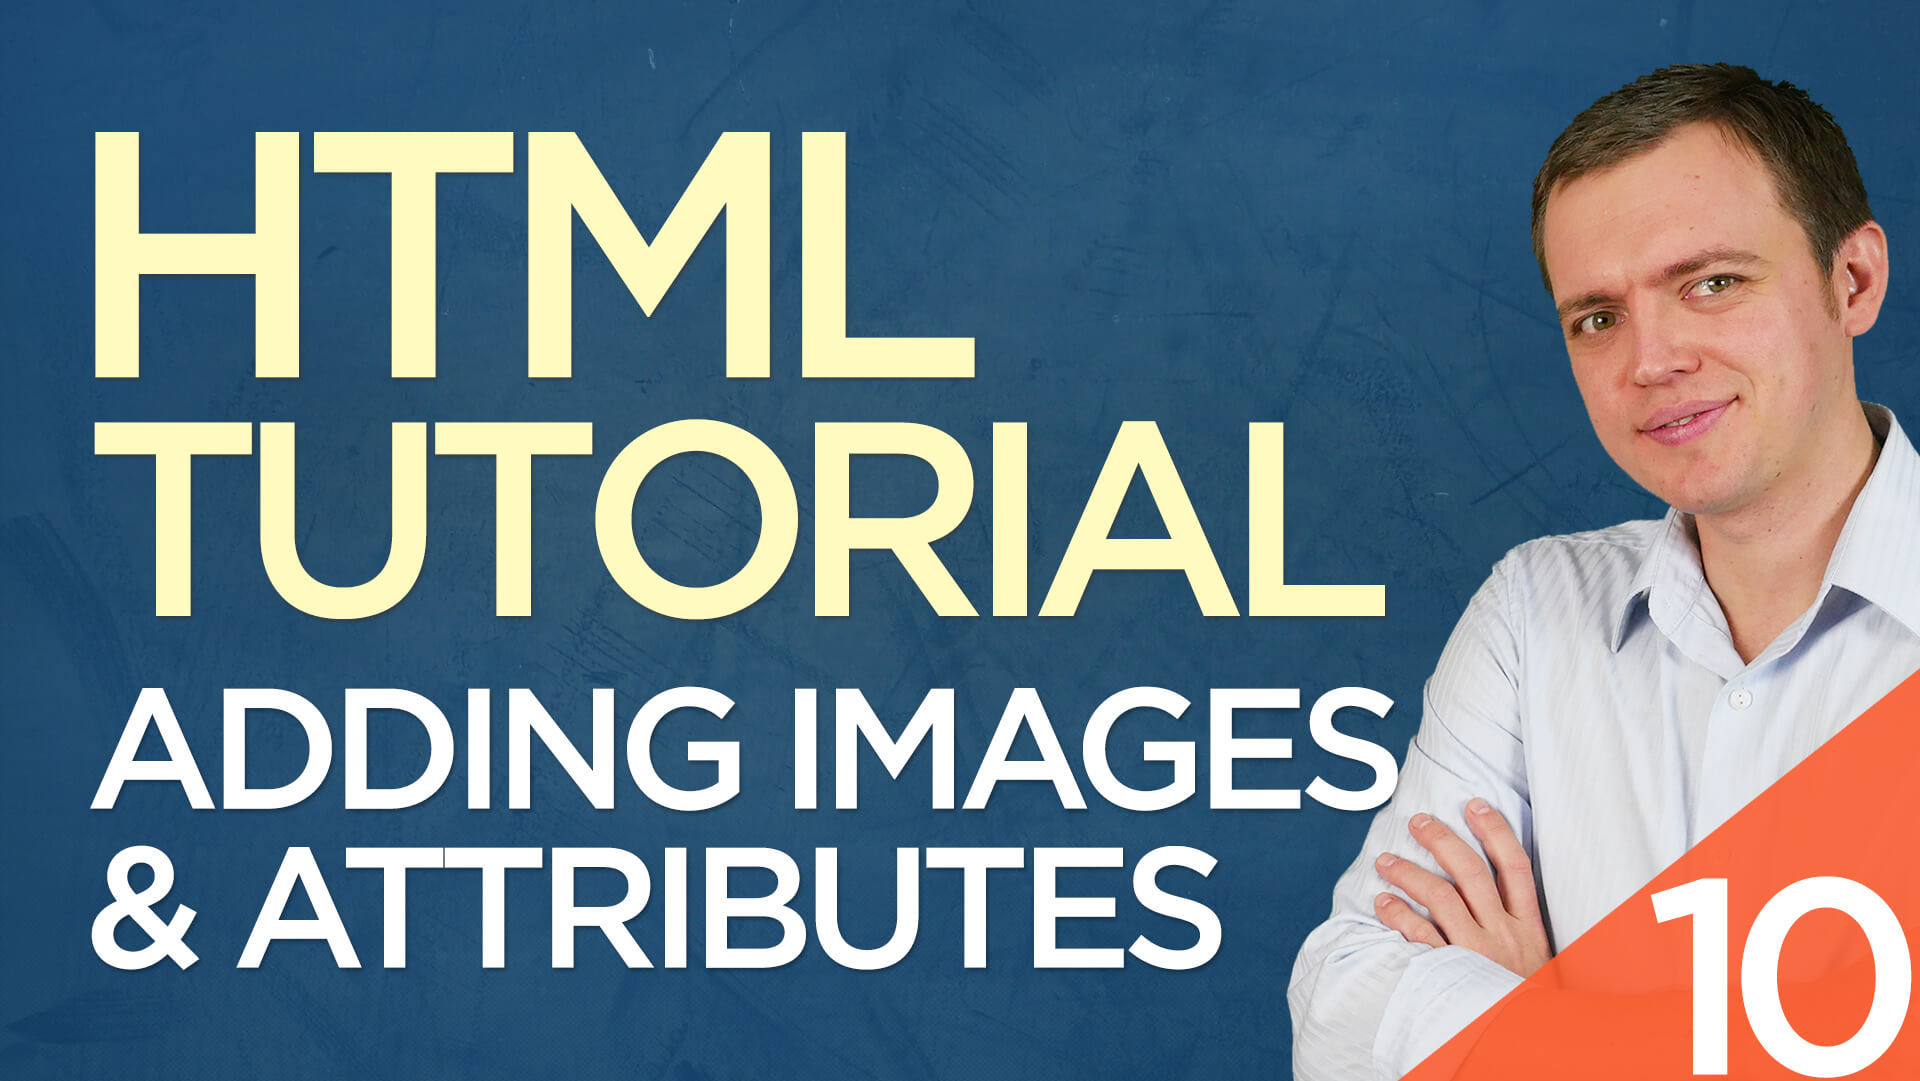 HTML Tutorial for Beginners: 10 Adding Images & Img Attributes (Width, Height, Alt, Src)